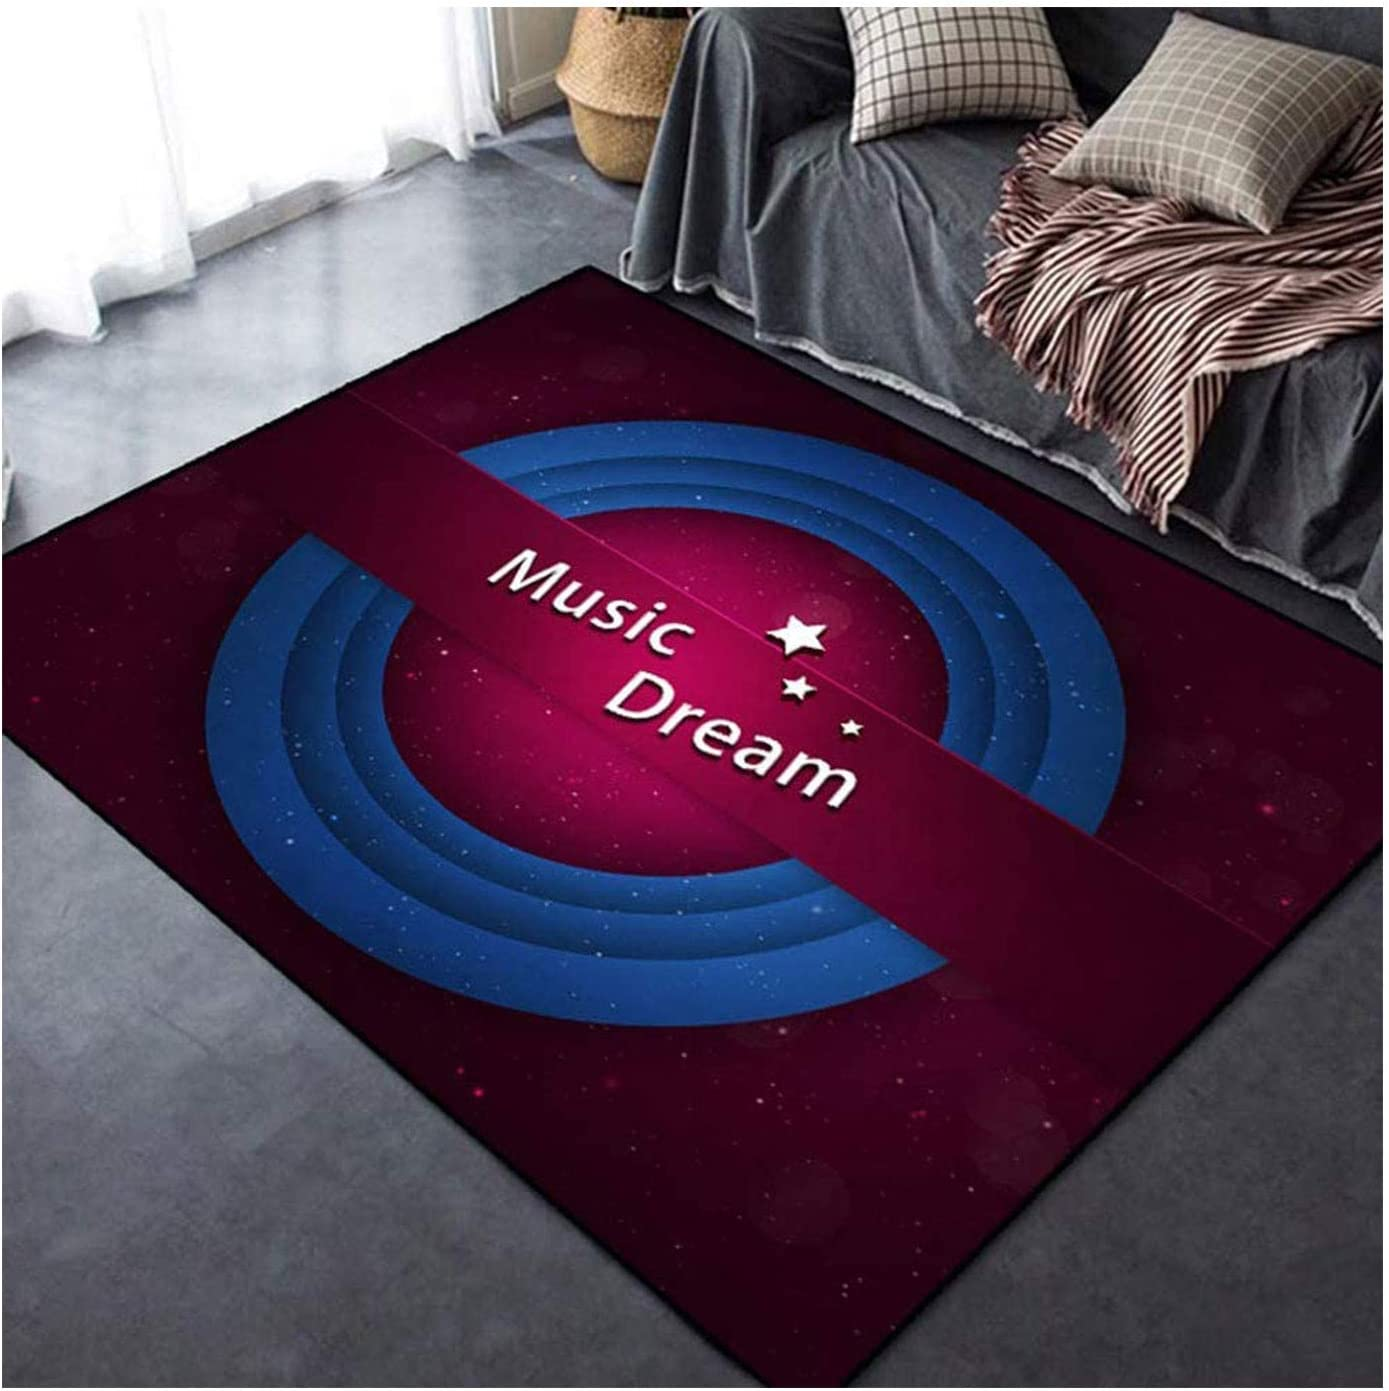 S Ranking TOP6 Home Drum Carpet Non- New item soundproof